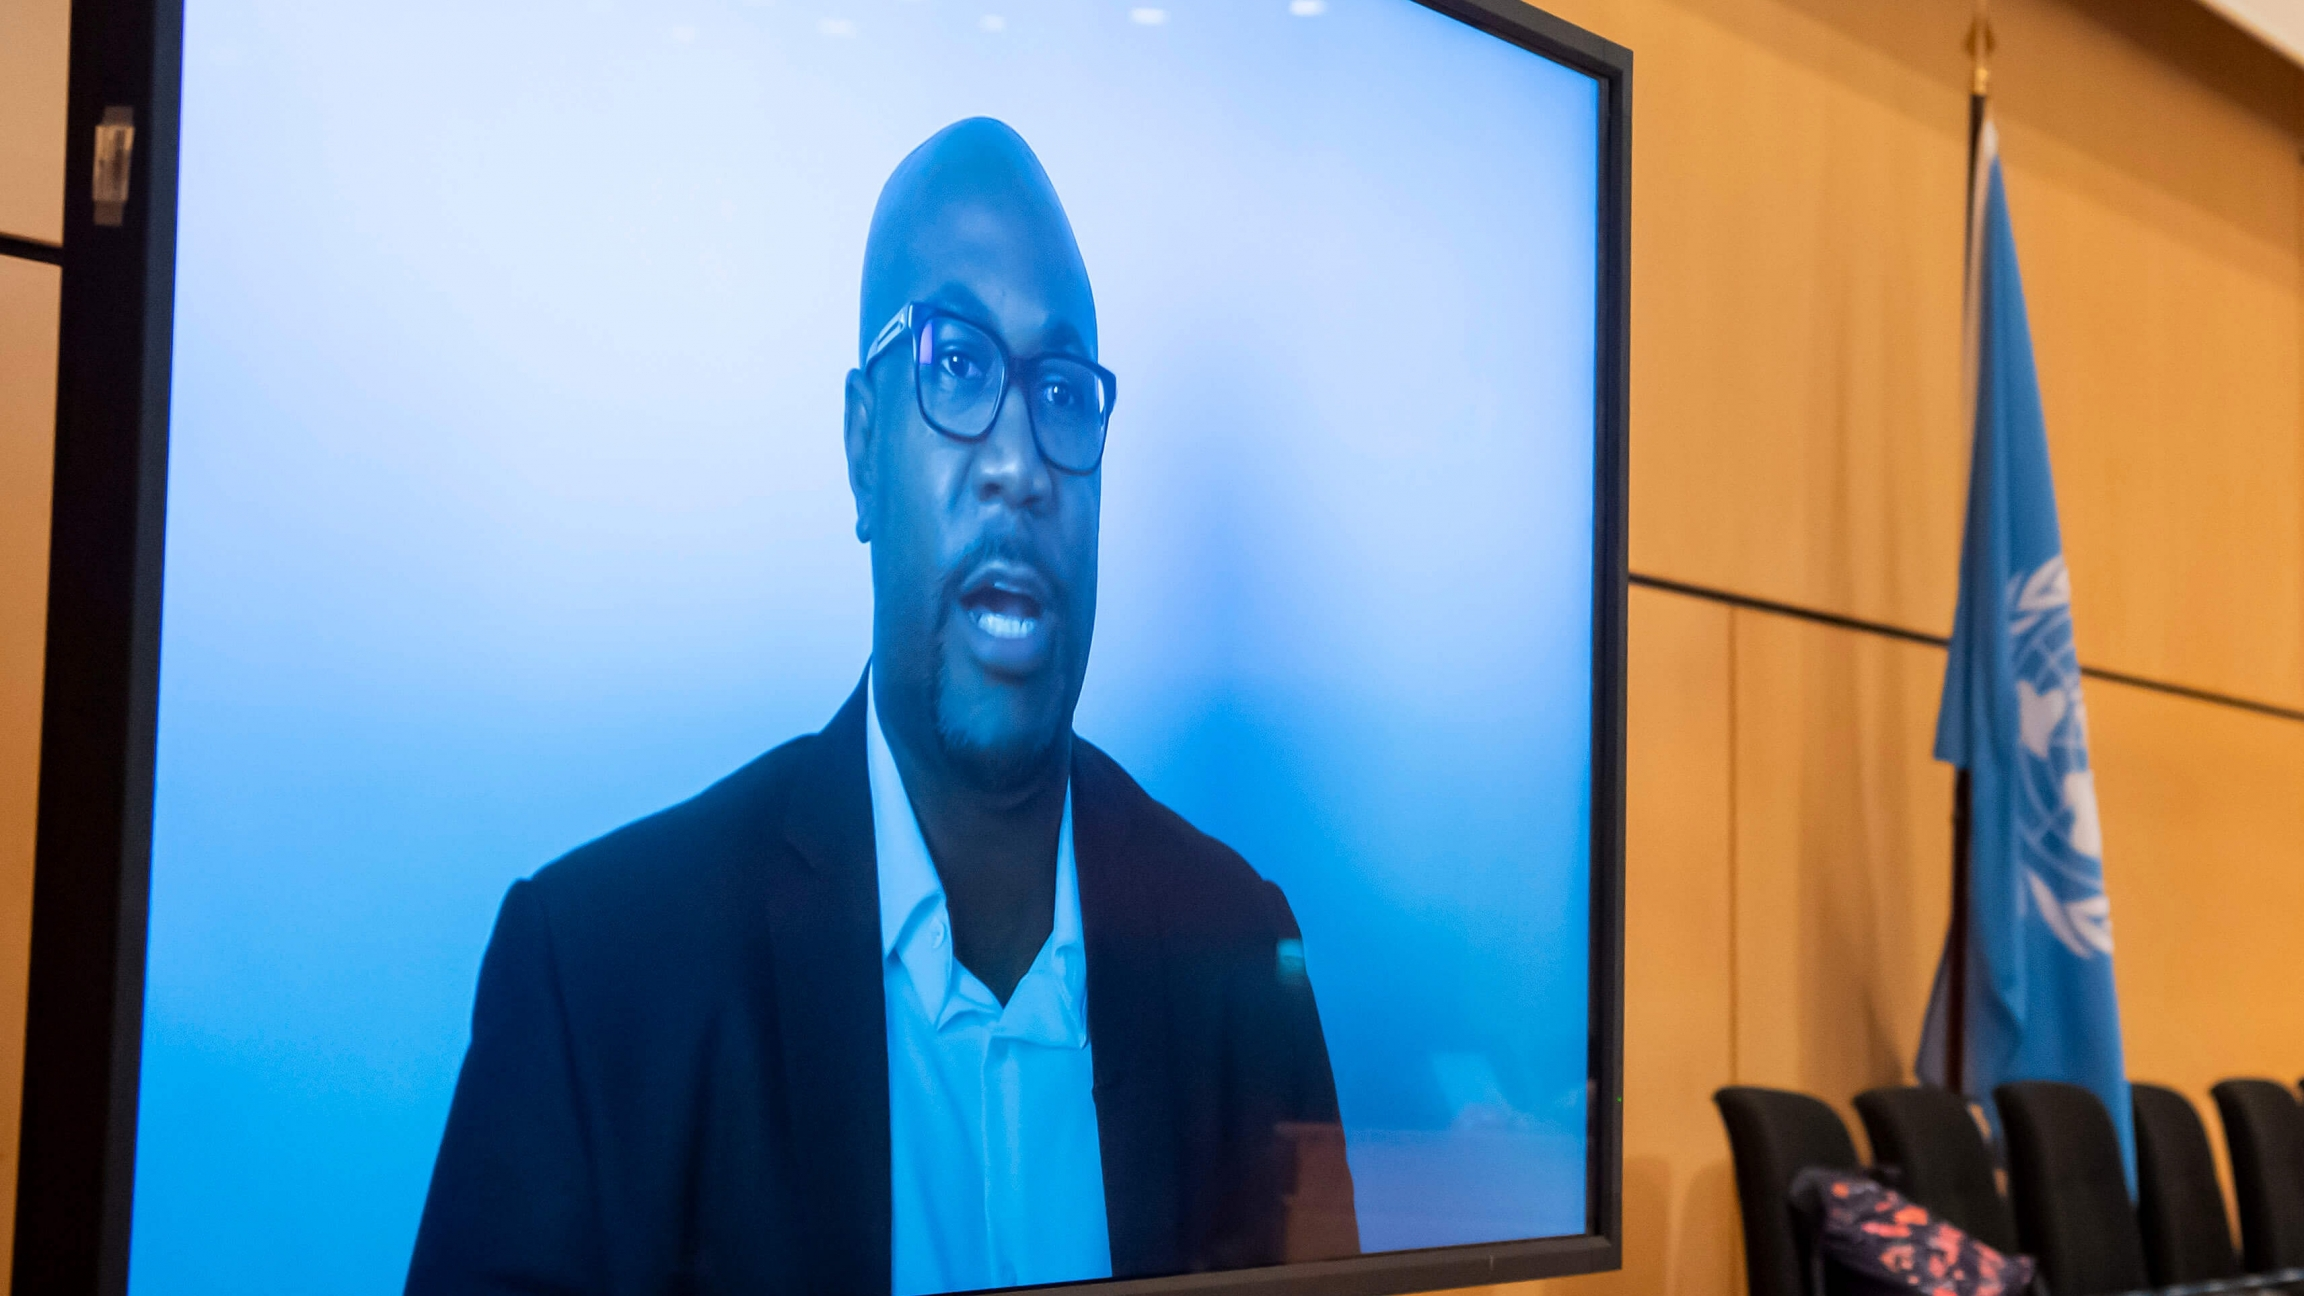 A Black American man wears glasses and a blue suit jacket and speaks via video with a blue background